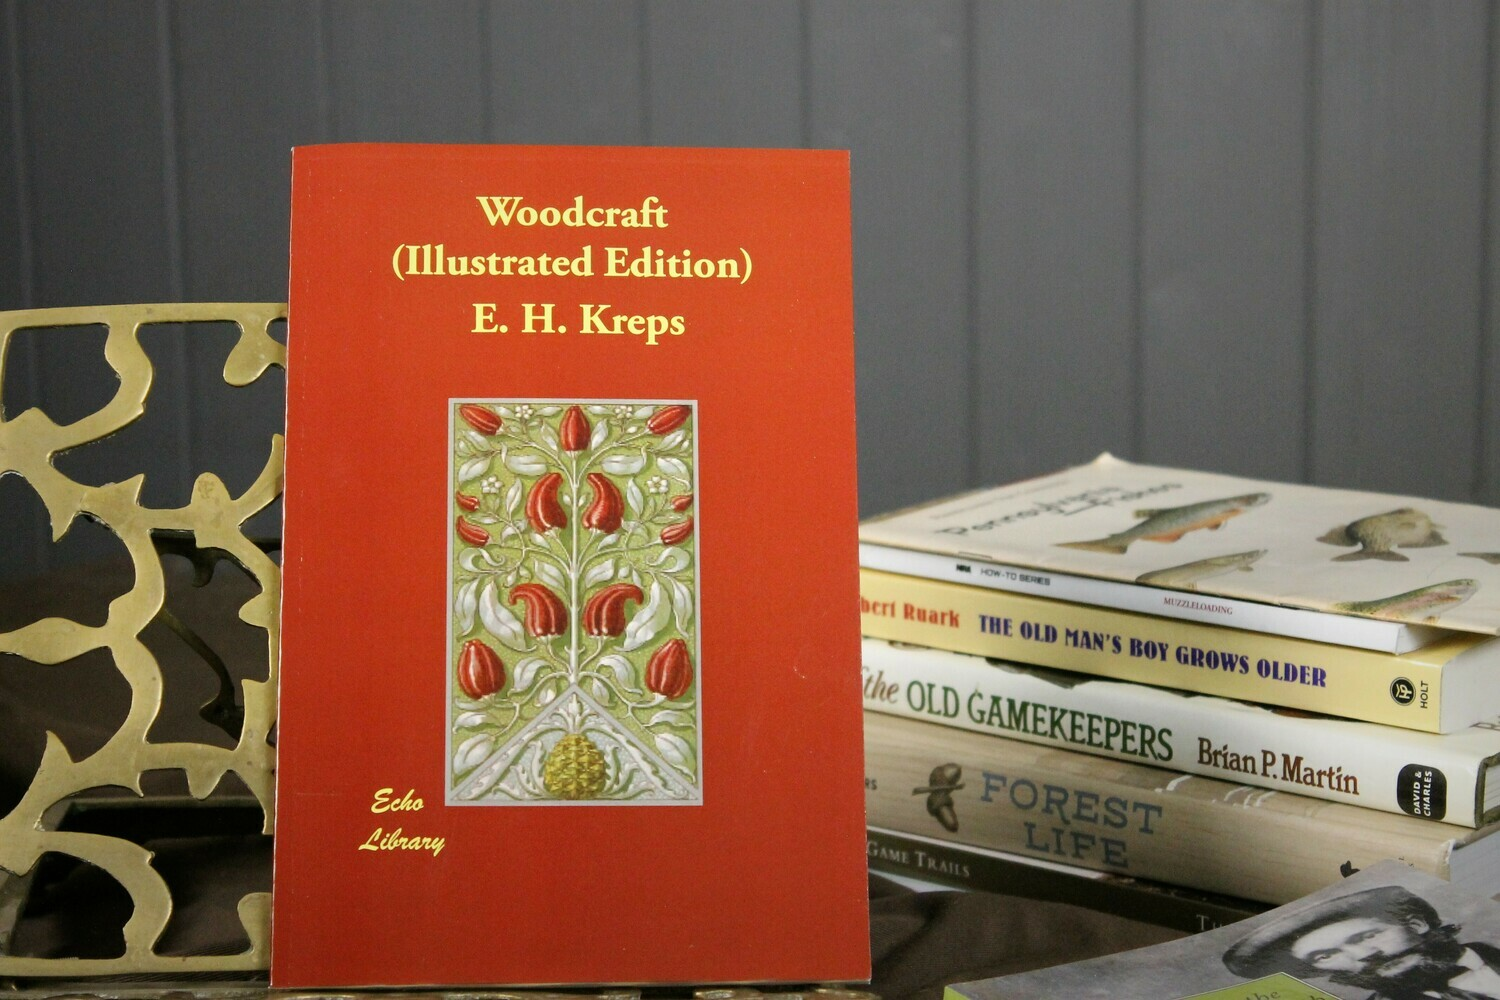 Woodcraft (Illustrated Edition) by E.H. Kreps